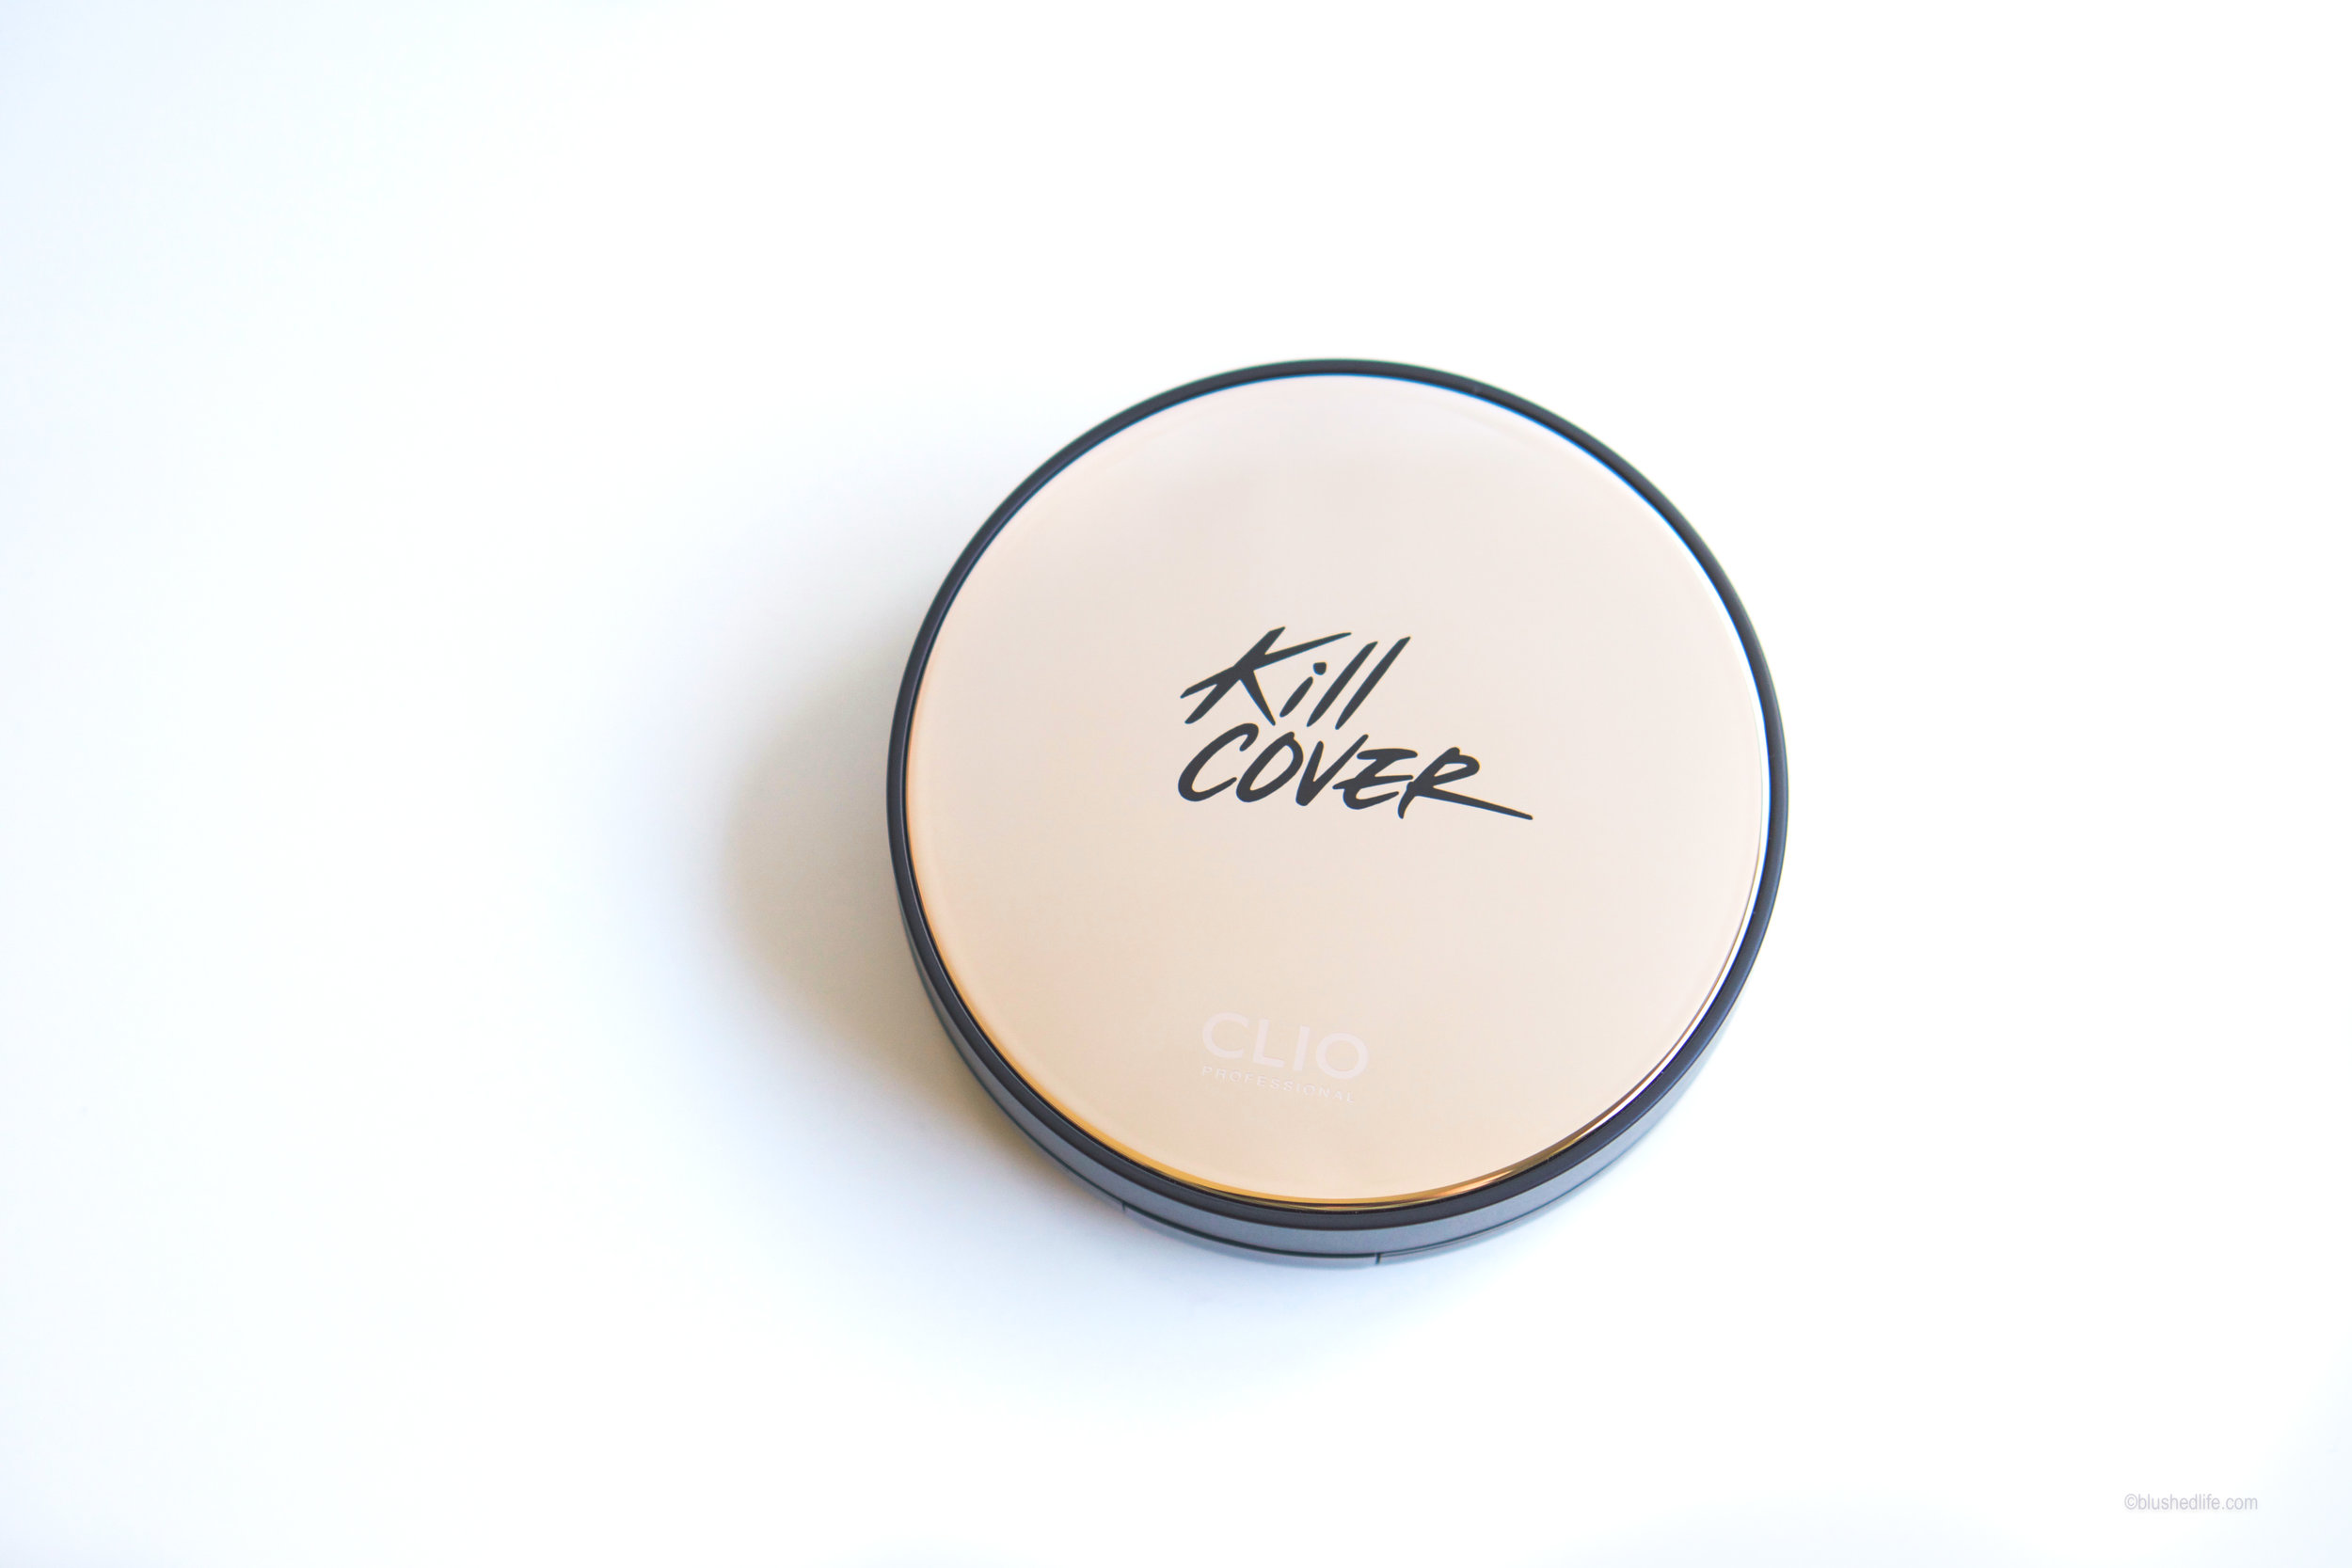 Clio Kill Cover Founwear Cushion Review_DSC07519-2.jpg